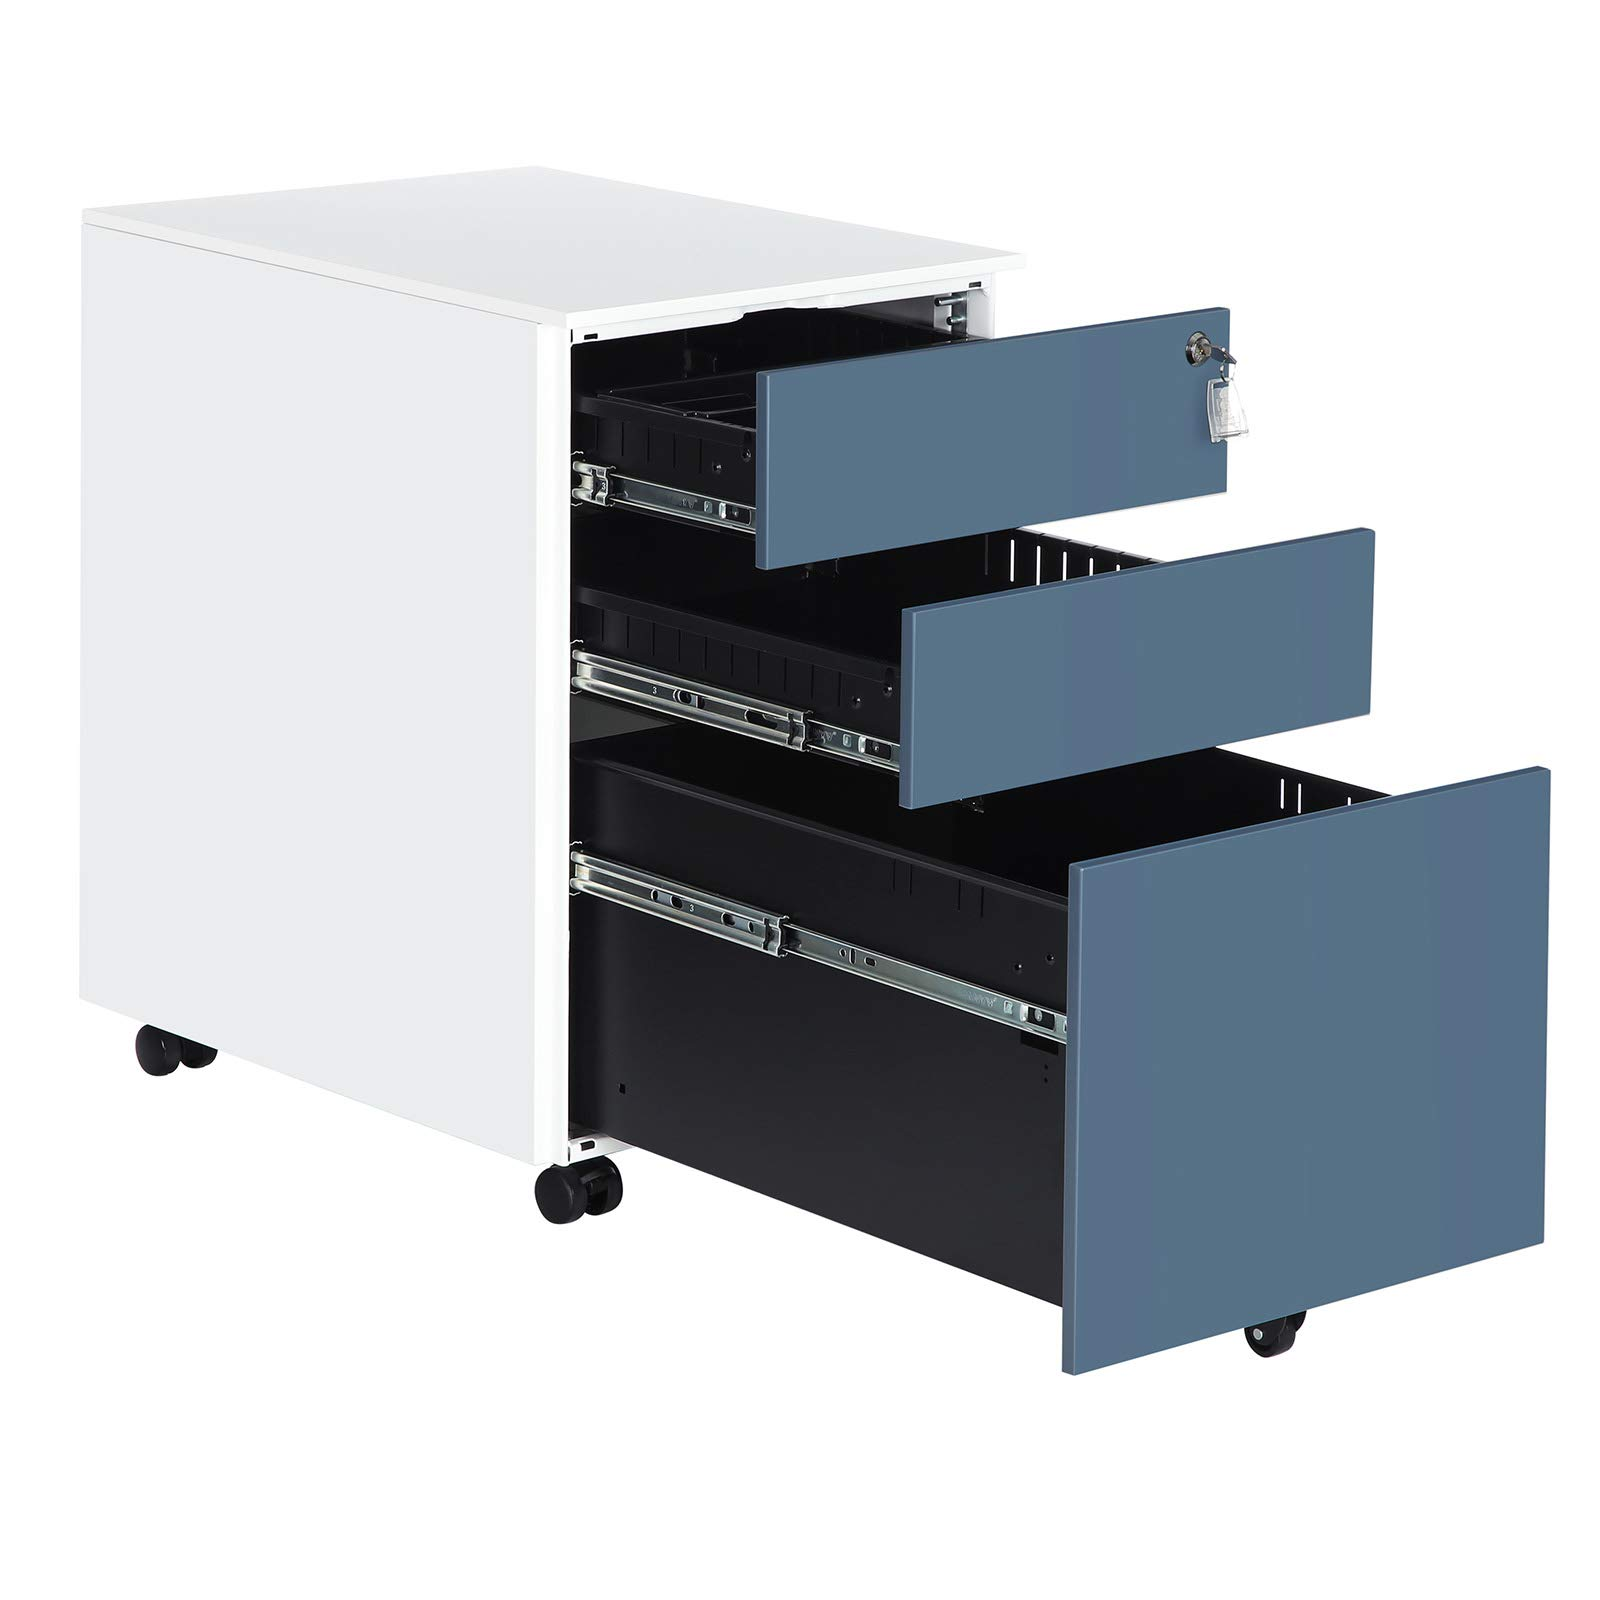 SONGMICS UOFC60WB Mobile File Cabinet, 20.5''L x 15.4''W x 23.6''H, White + Blue by SONGMICS